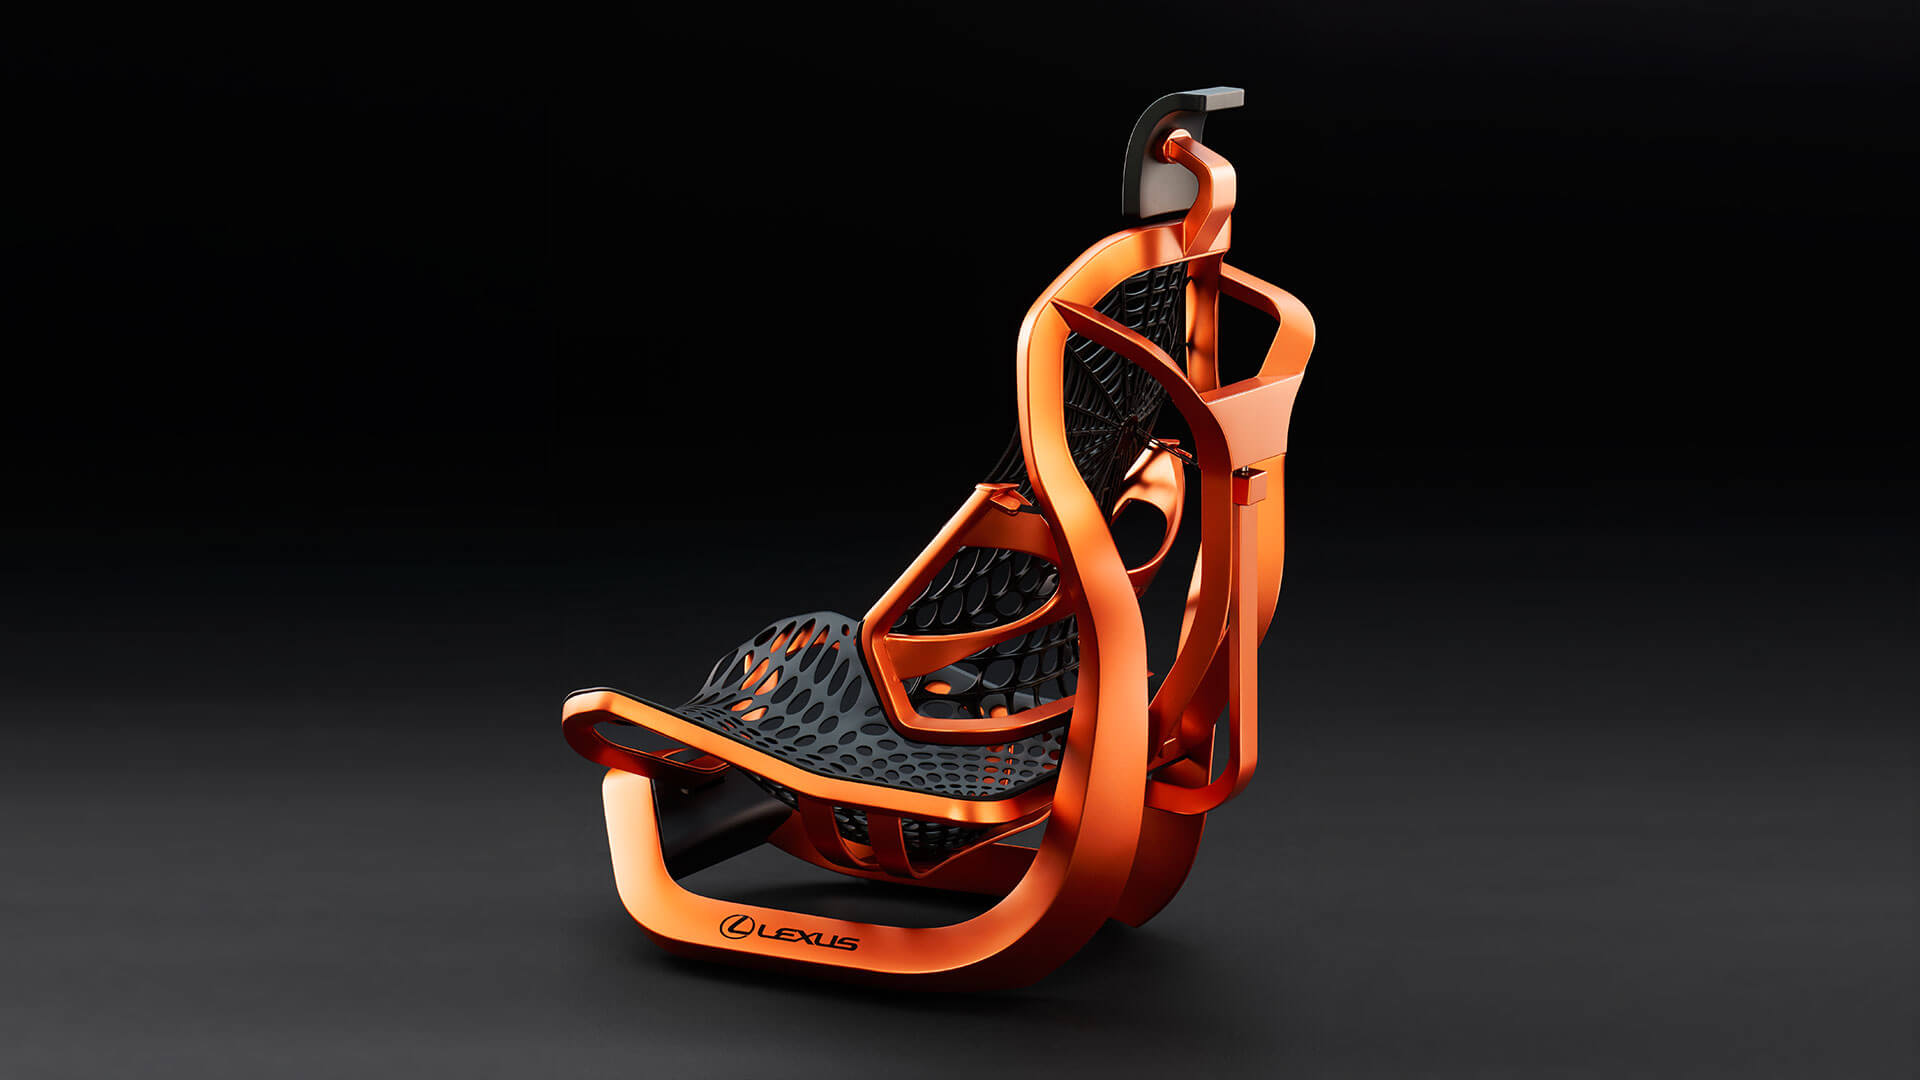 2017 lexus kineticSeat gallery03